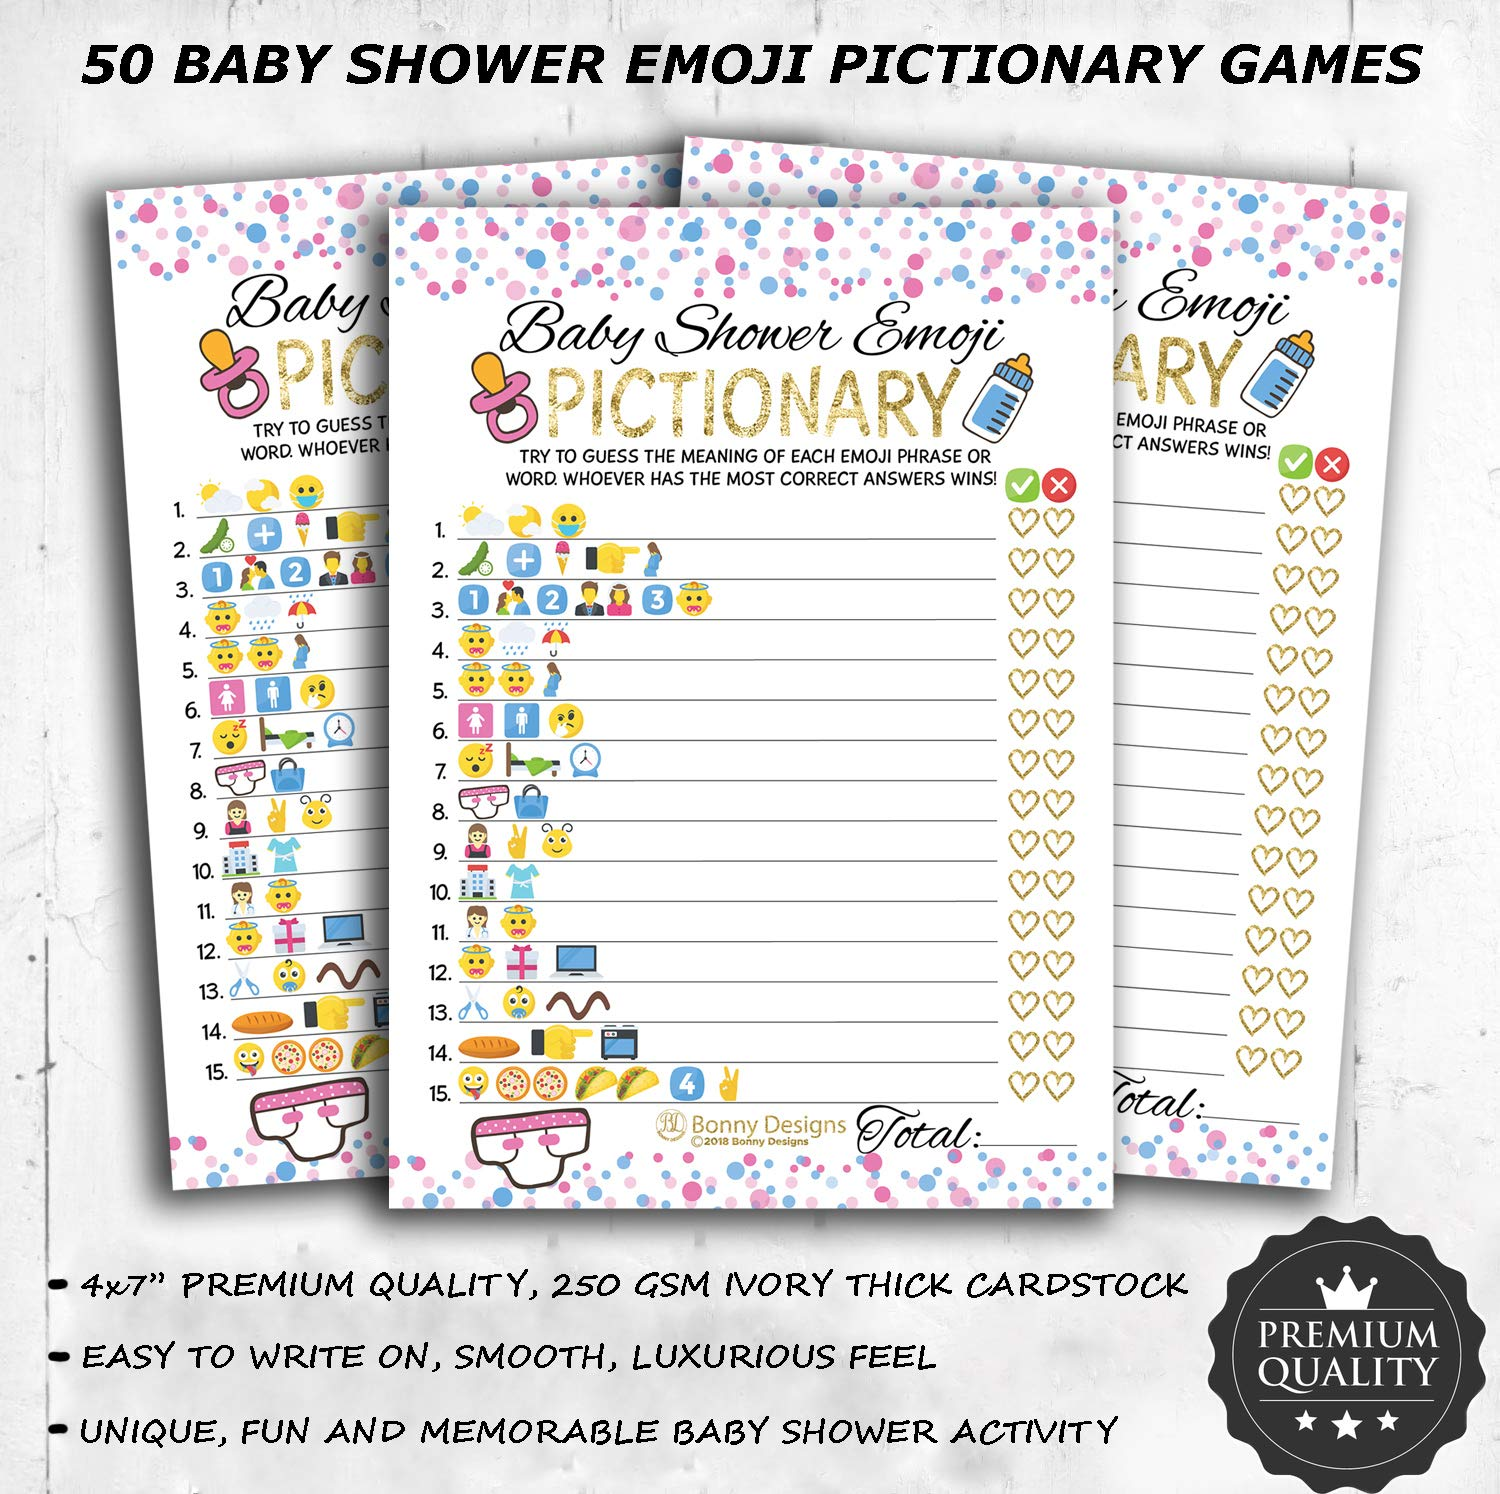 Baby Shower Party Decorations Kit Unisex, Girls and Boys | Oh Baby Banner Neutral Decor | 12 Pcs Balloon Set | Glitter Unisex Pregnancy Announcement Gender Reveal Party | 50 Pcs Premium Baby Shower Emoji Game Cards by Newborn Party (Image #3)